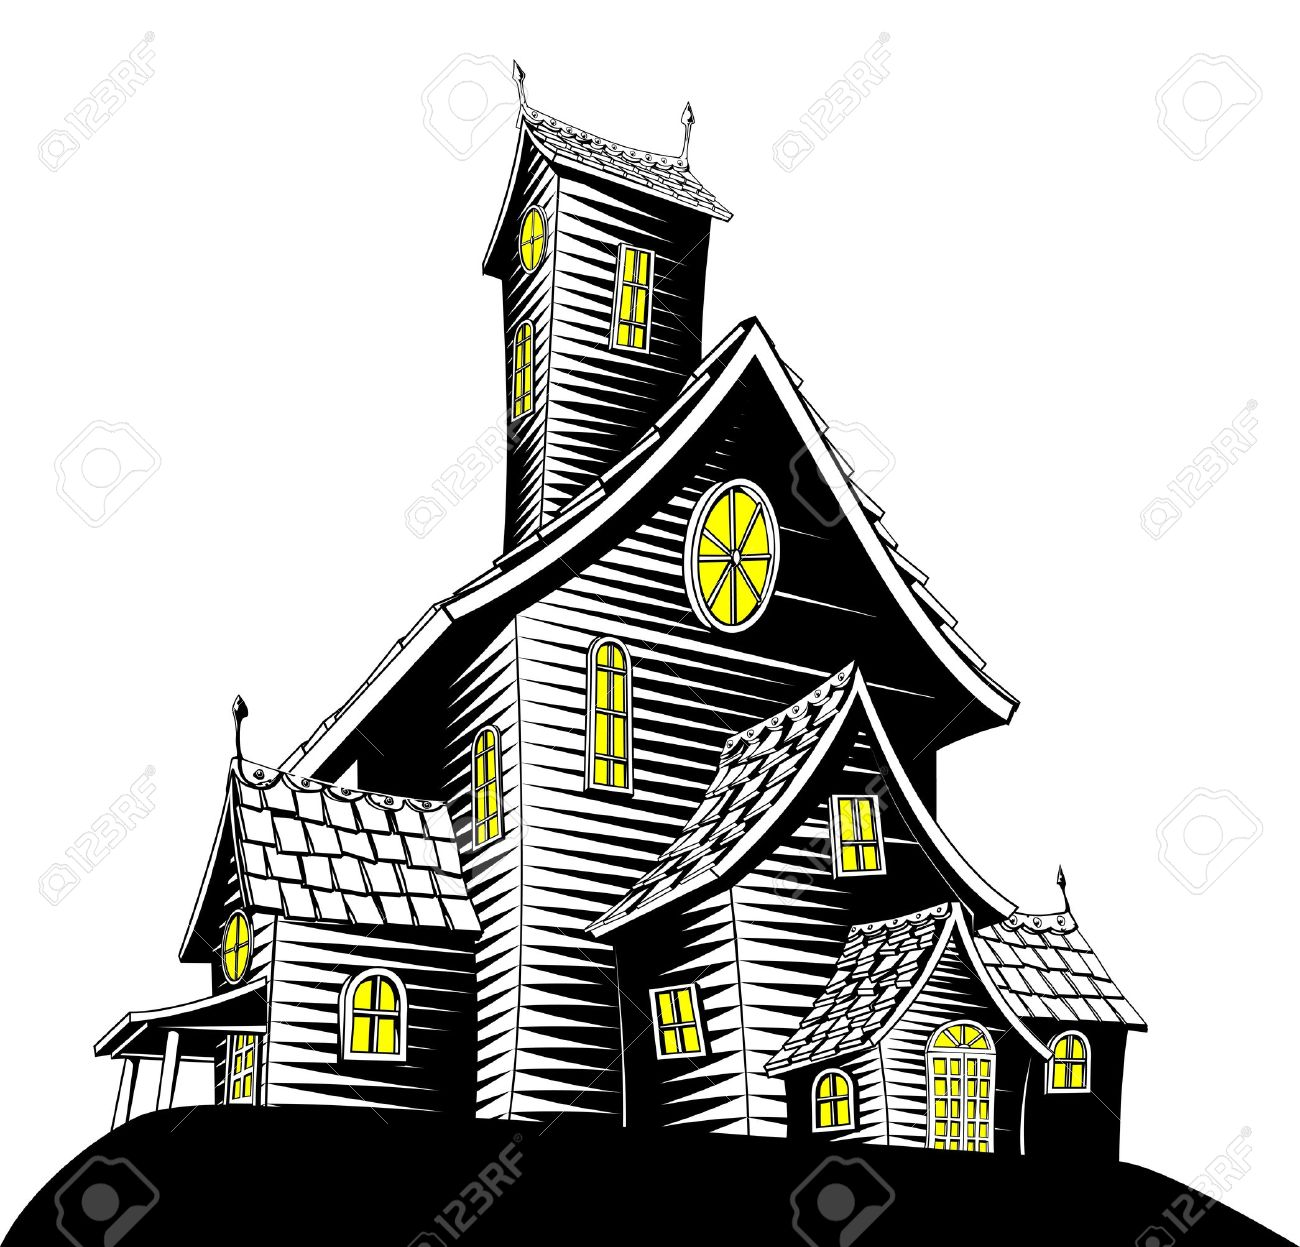 973 Abandoned House Stock Illustrations, Cliparts And Royalty Free.